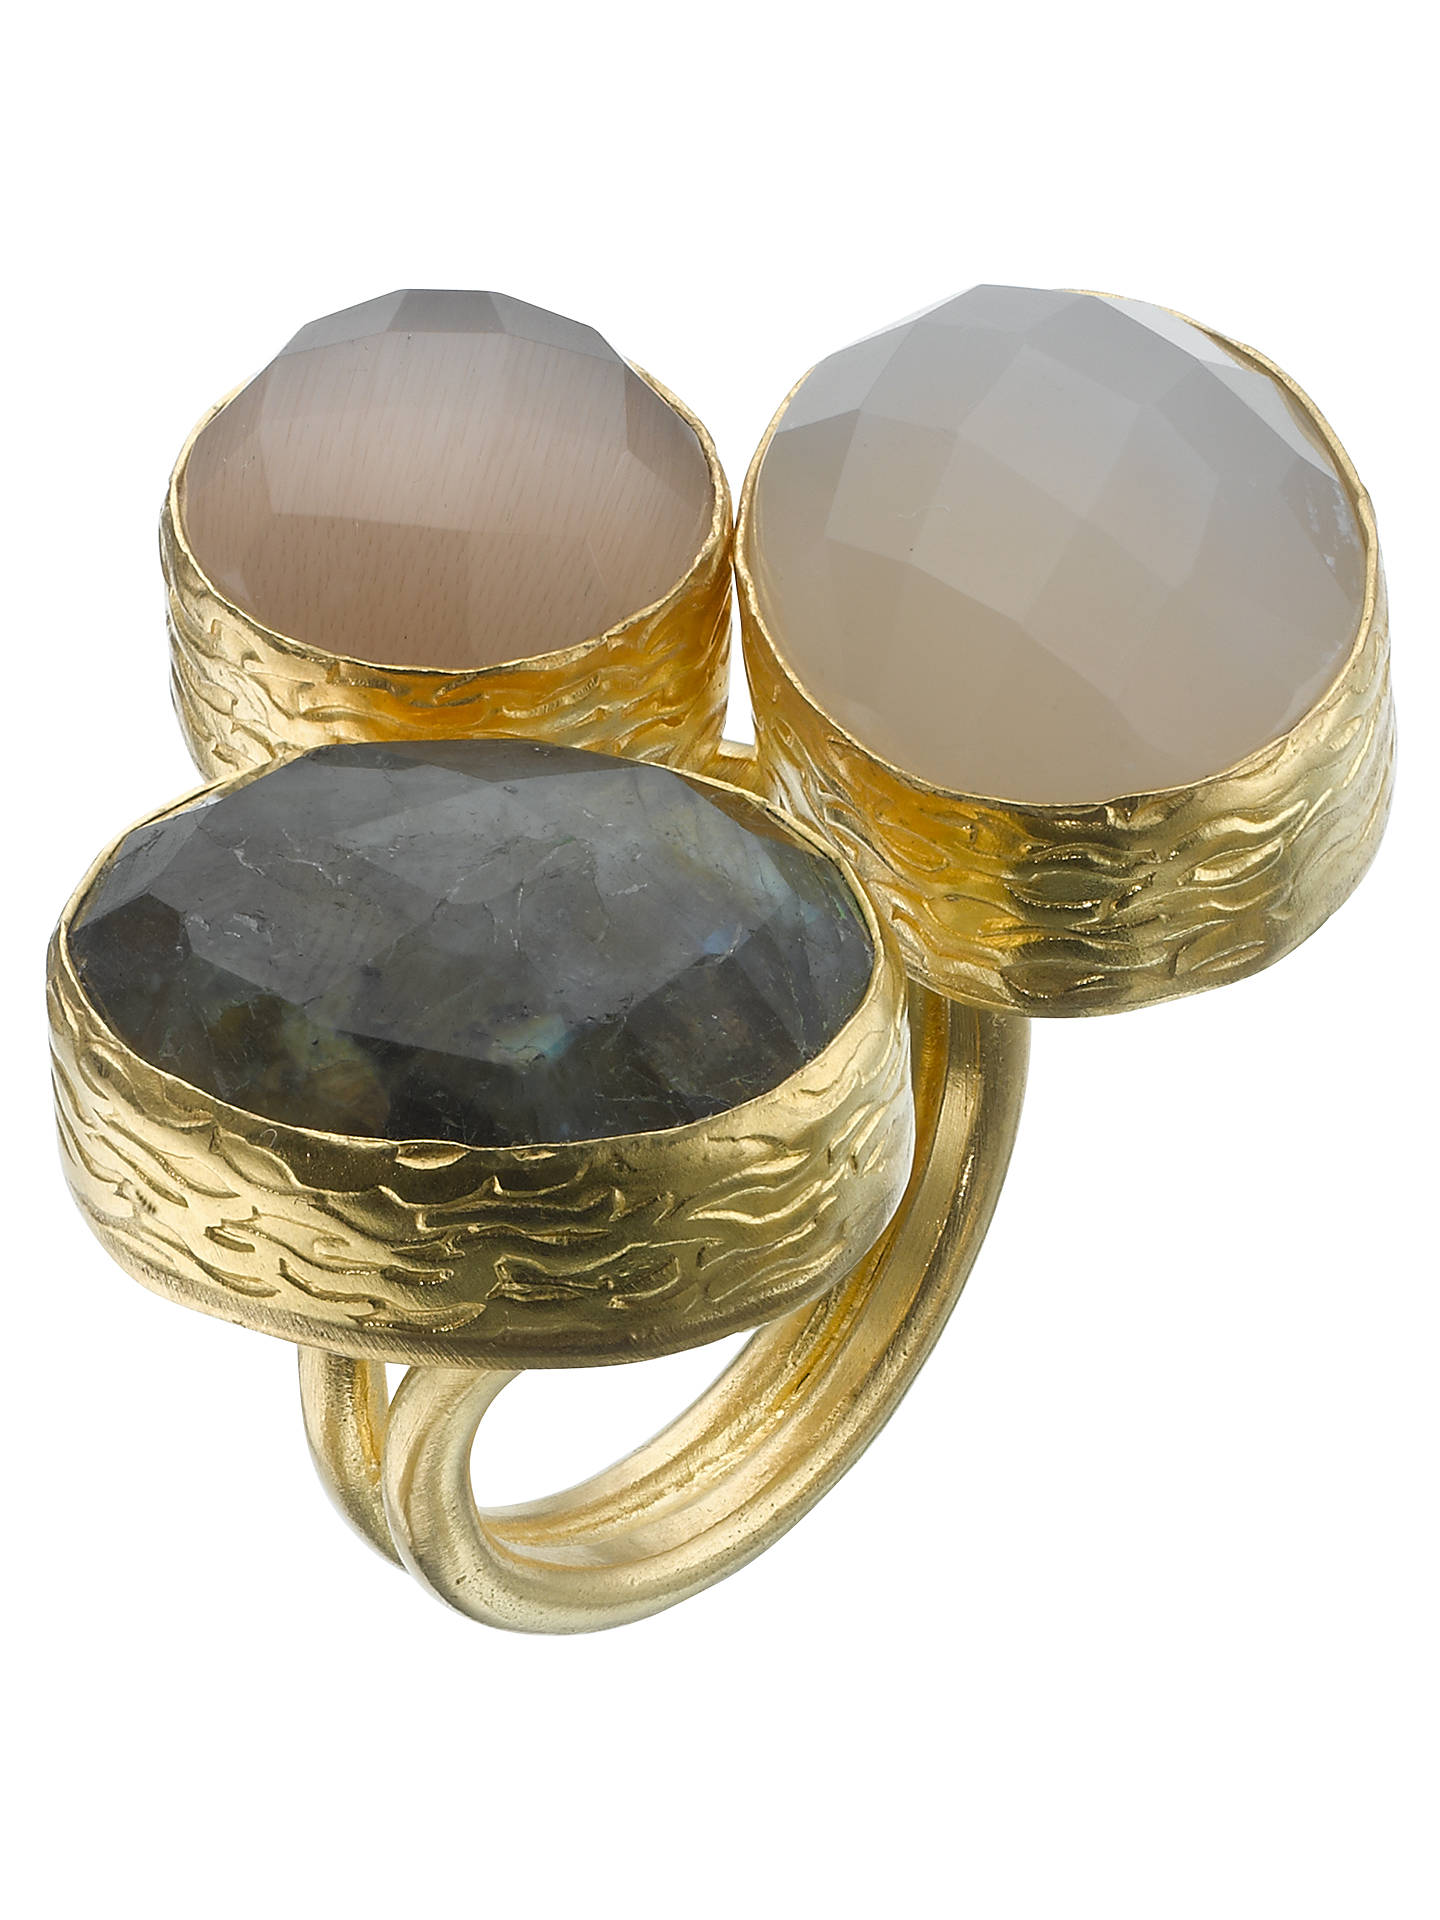 Buy Ottoman Hands 21ct Gold Plated Triple Stone Teardrop Ring, Smokey Quartz / Labradorite Online at johnlewis.com